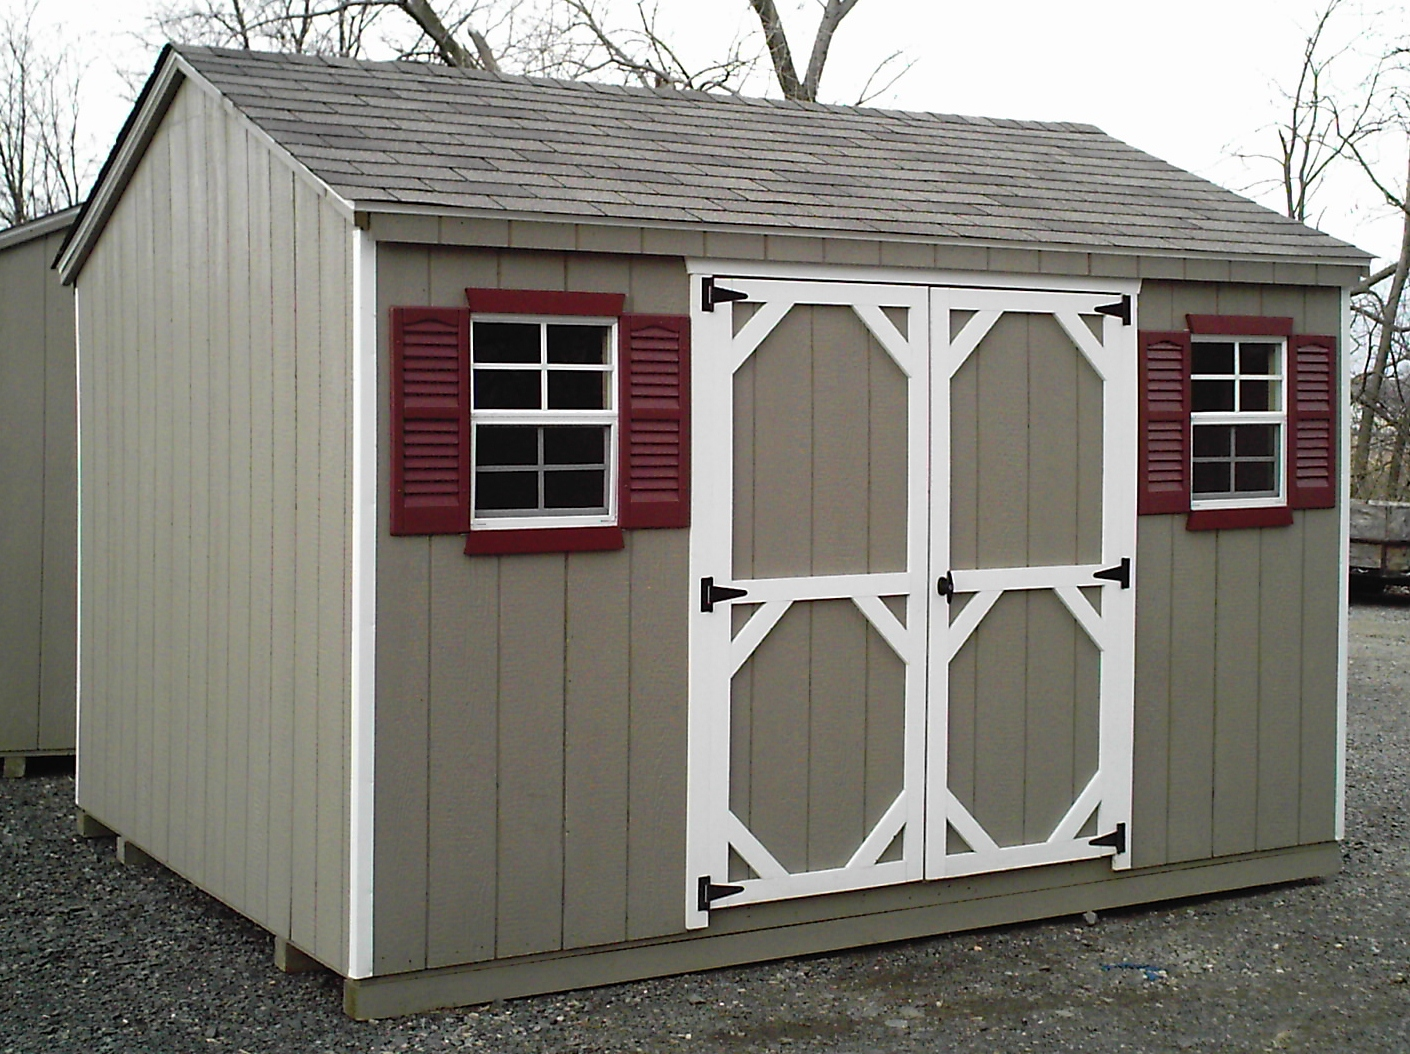 md sheds gazebos port reading woodbridge township nj 732 634 3289